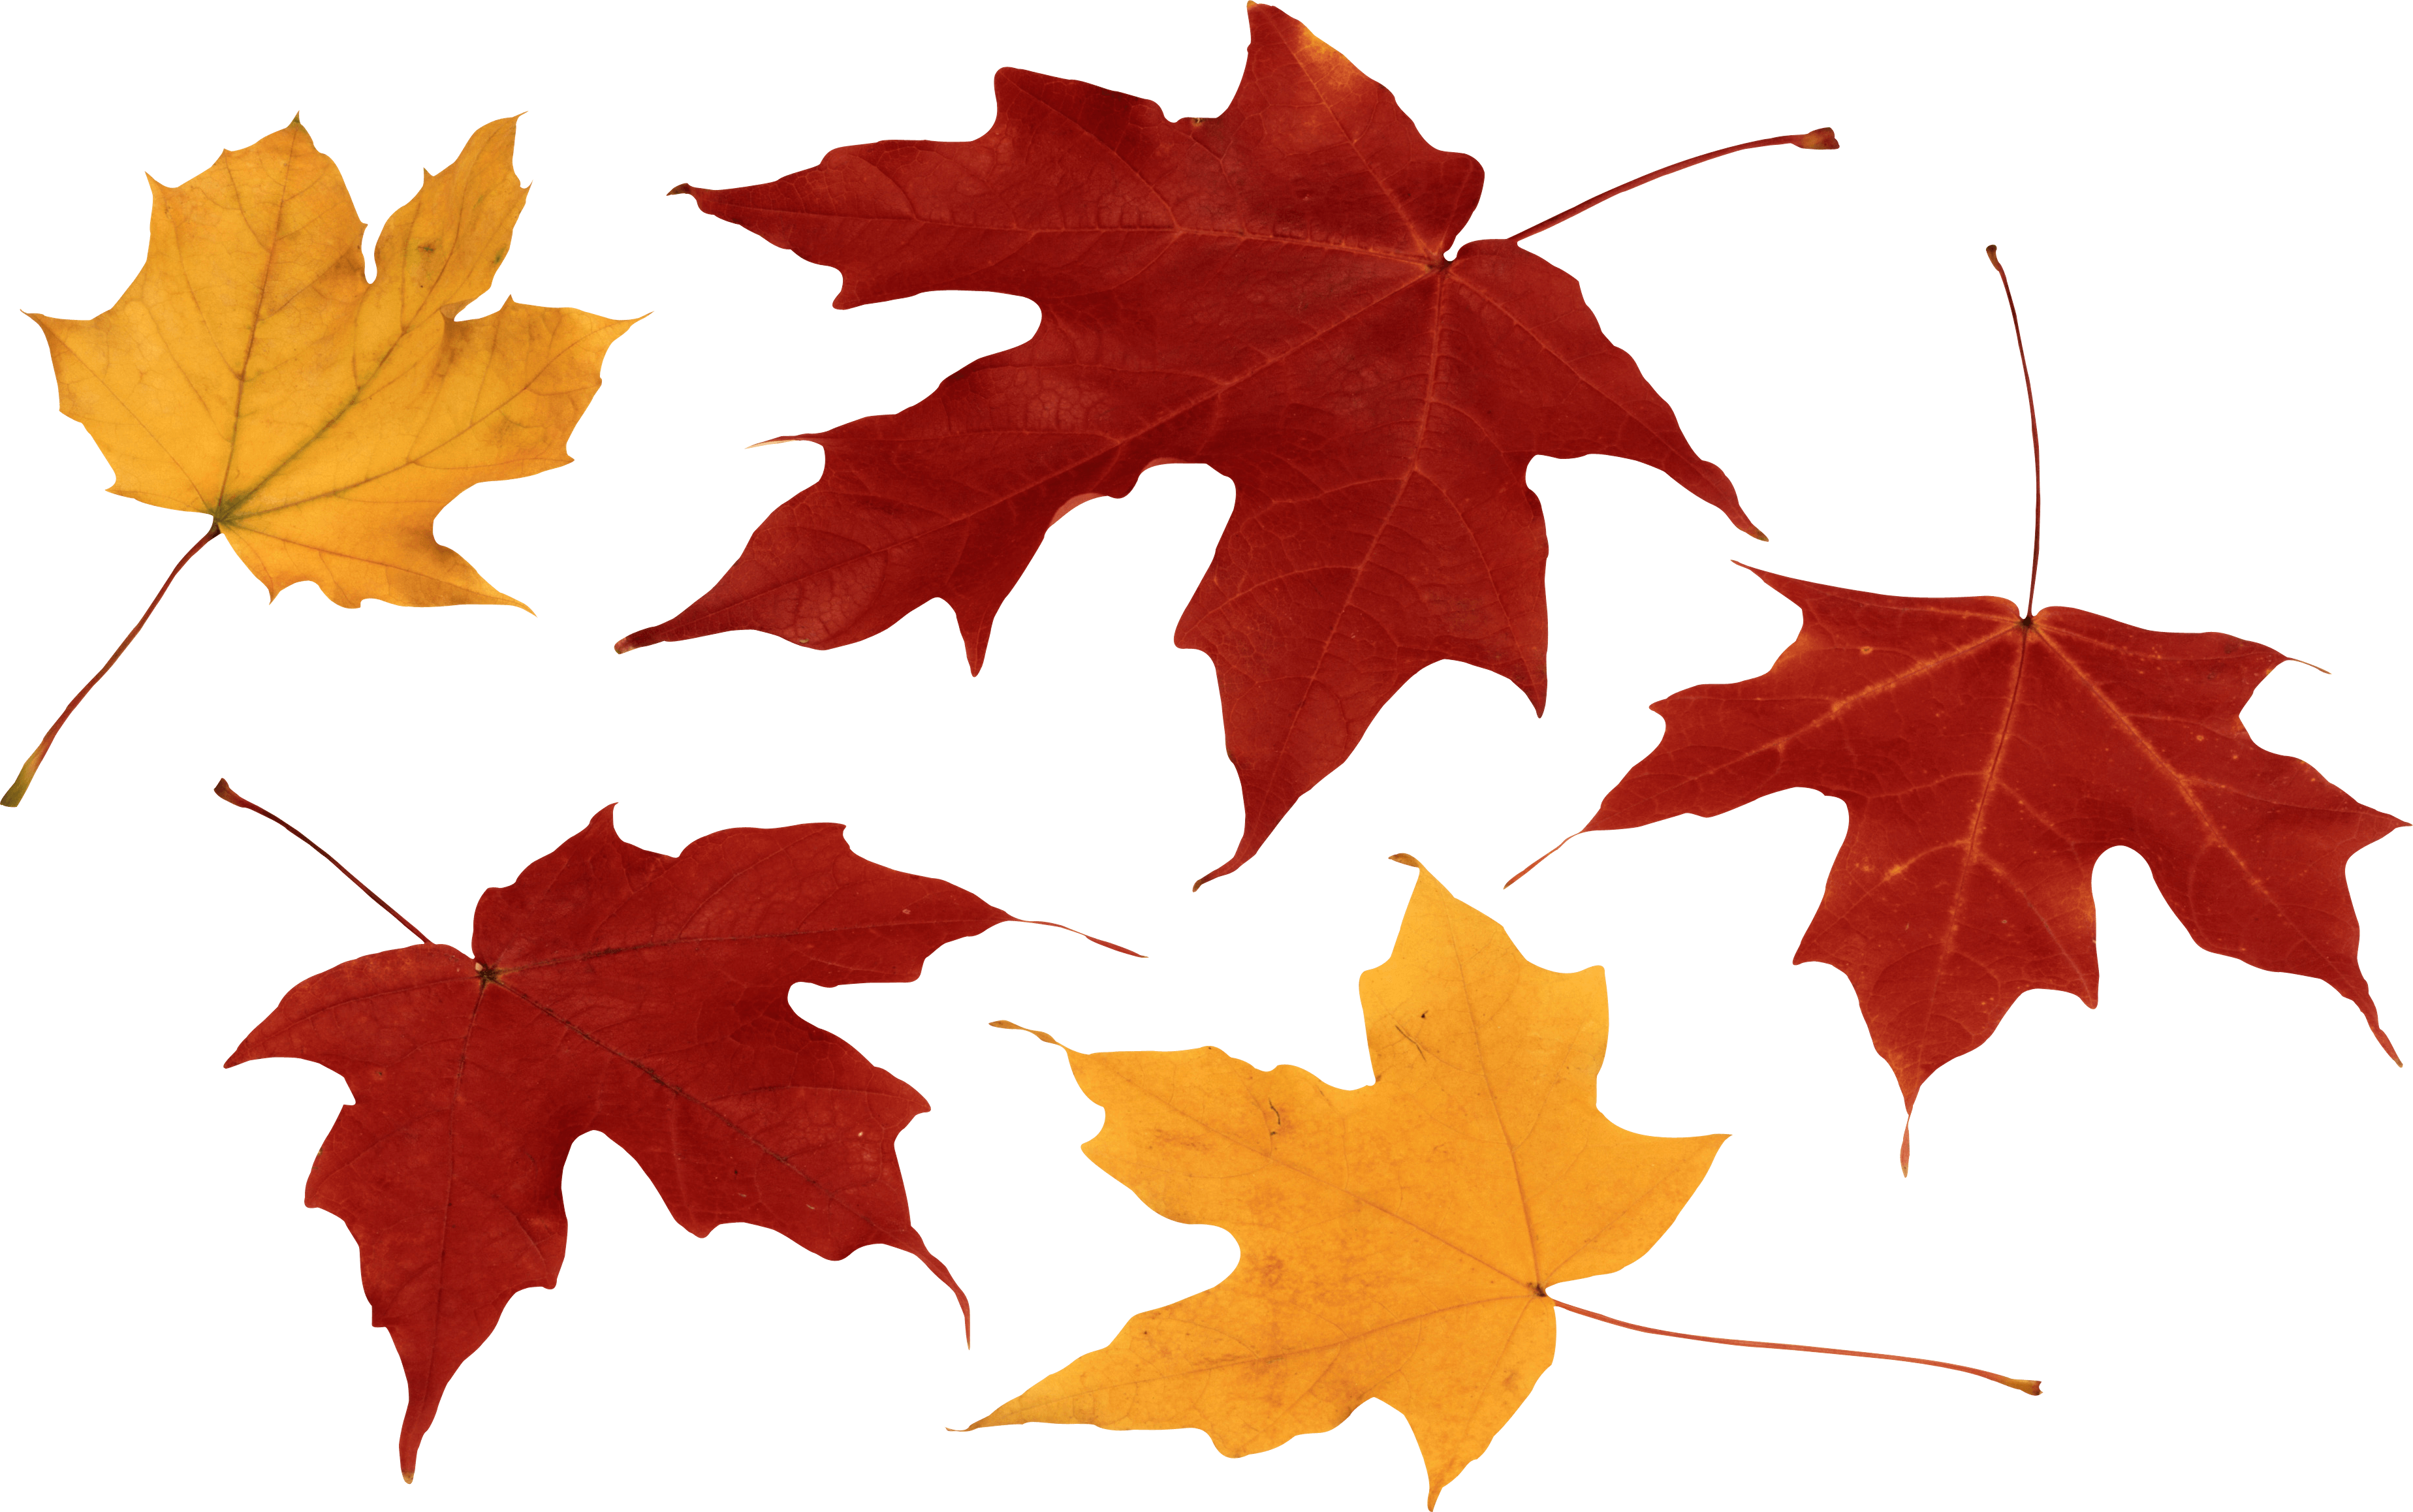 Autumn Leaves Hd Png - Autumn Png Leaf Png Image, Transparent background PNG HD thumbnail